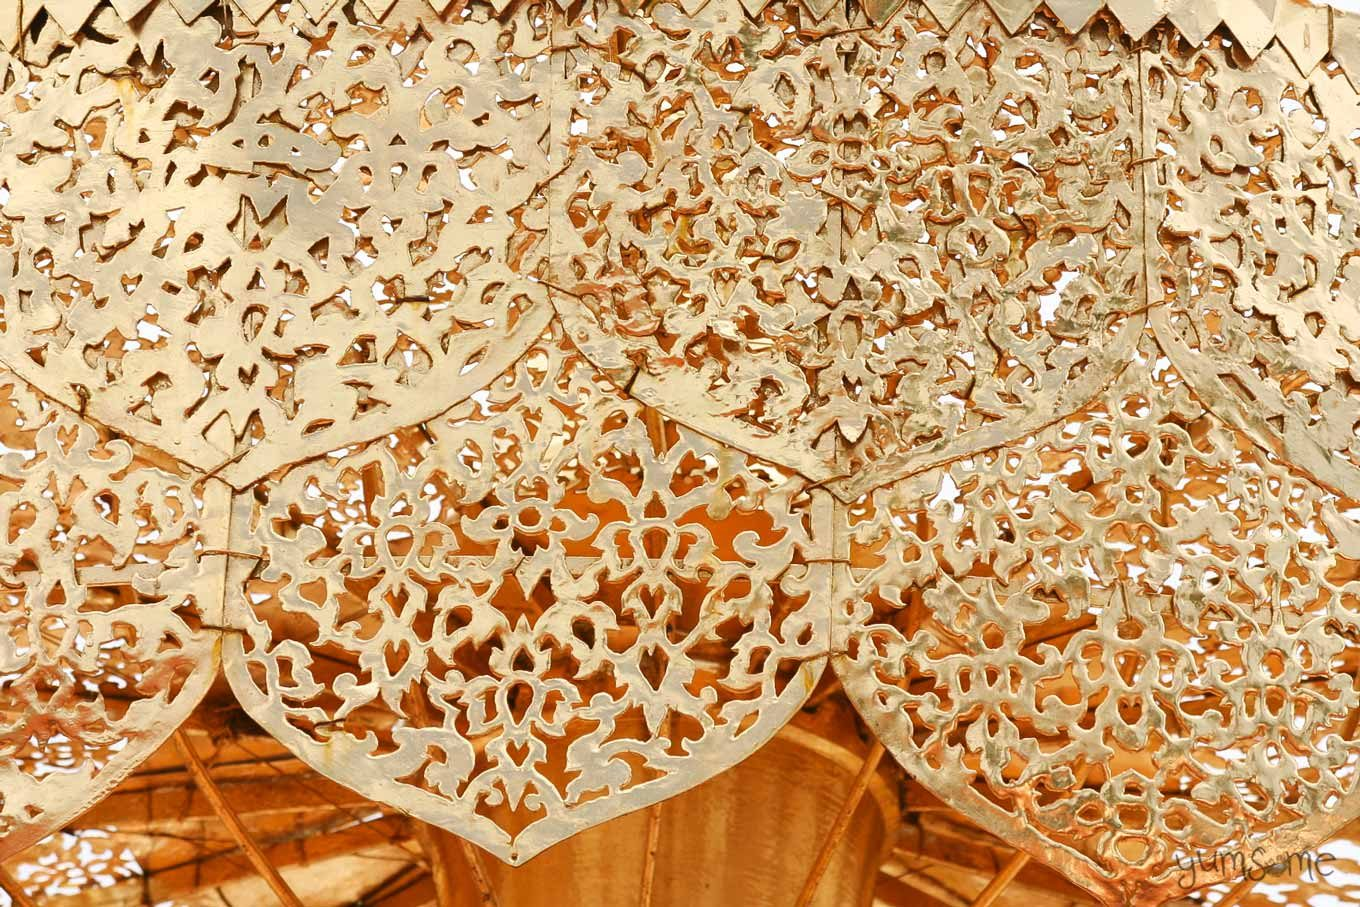 Filigree detail of a chatra at Wat Doi Suthep.